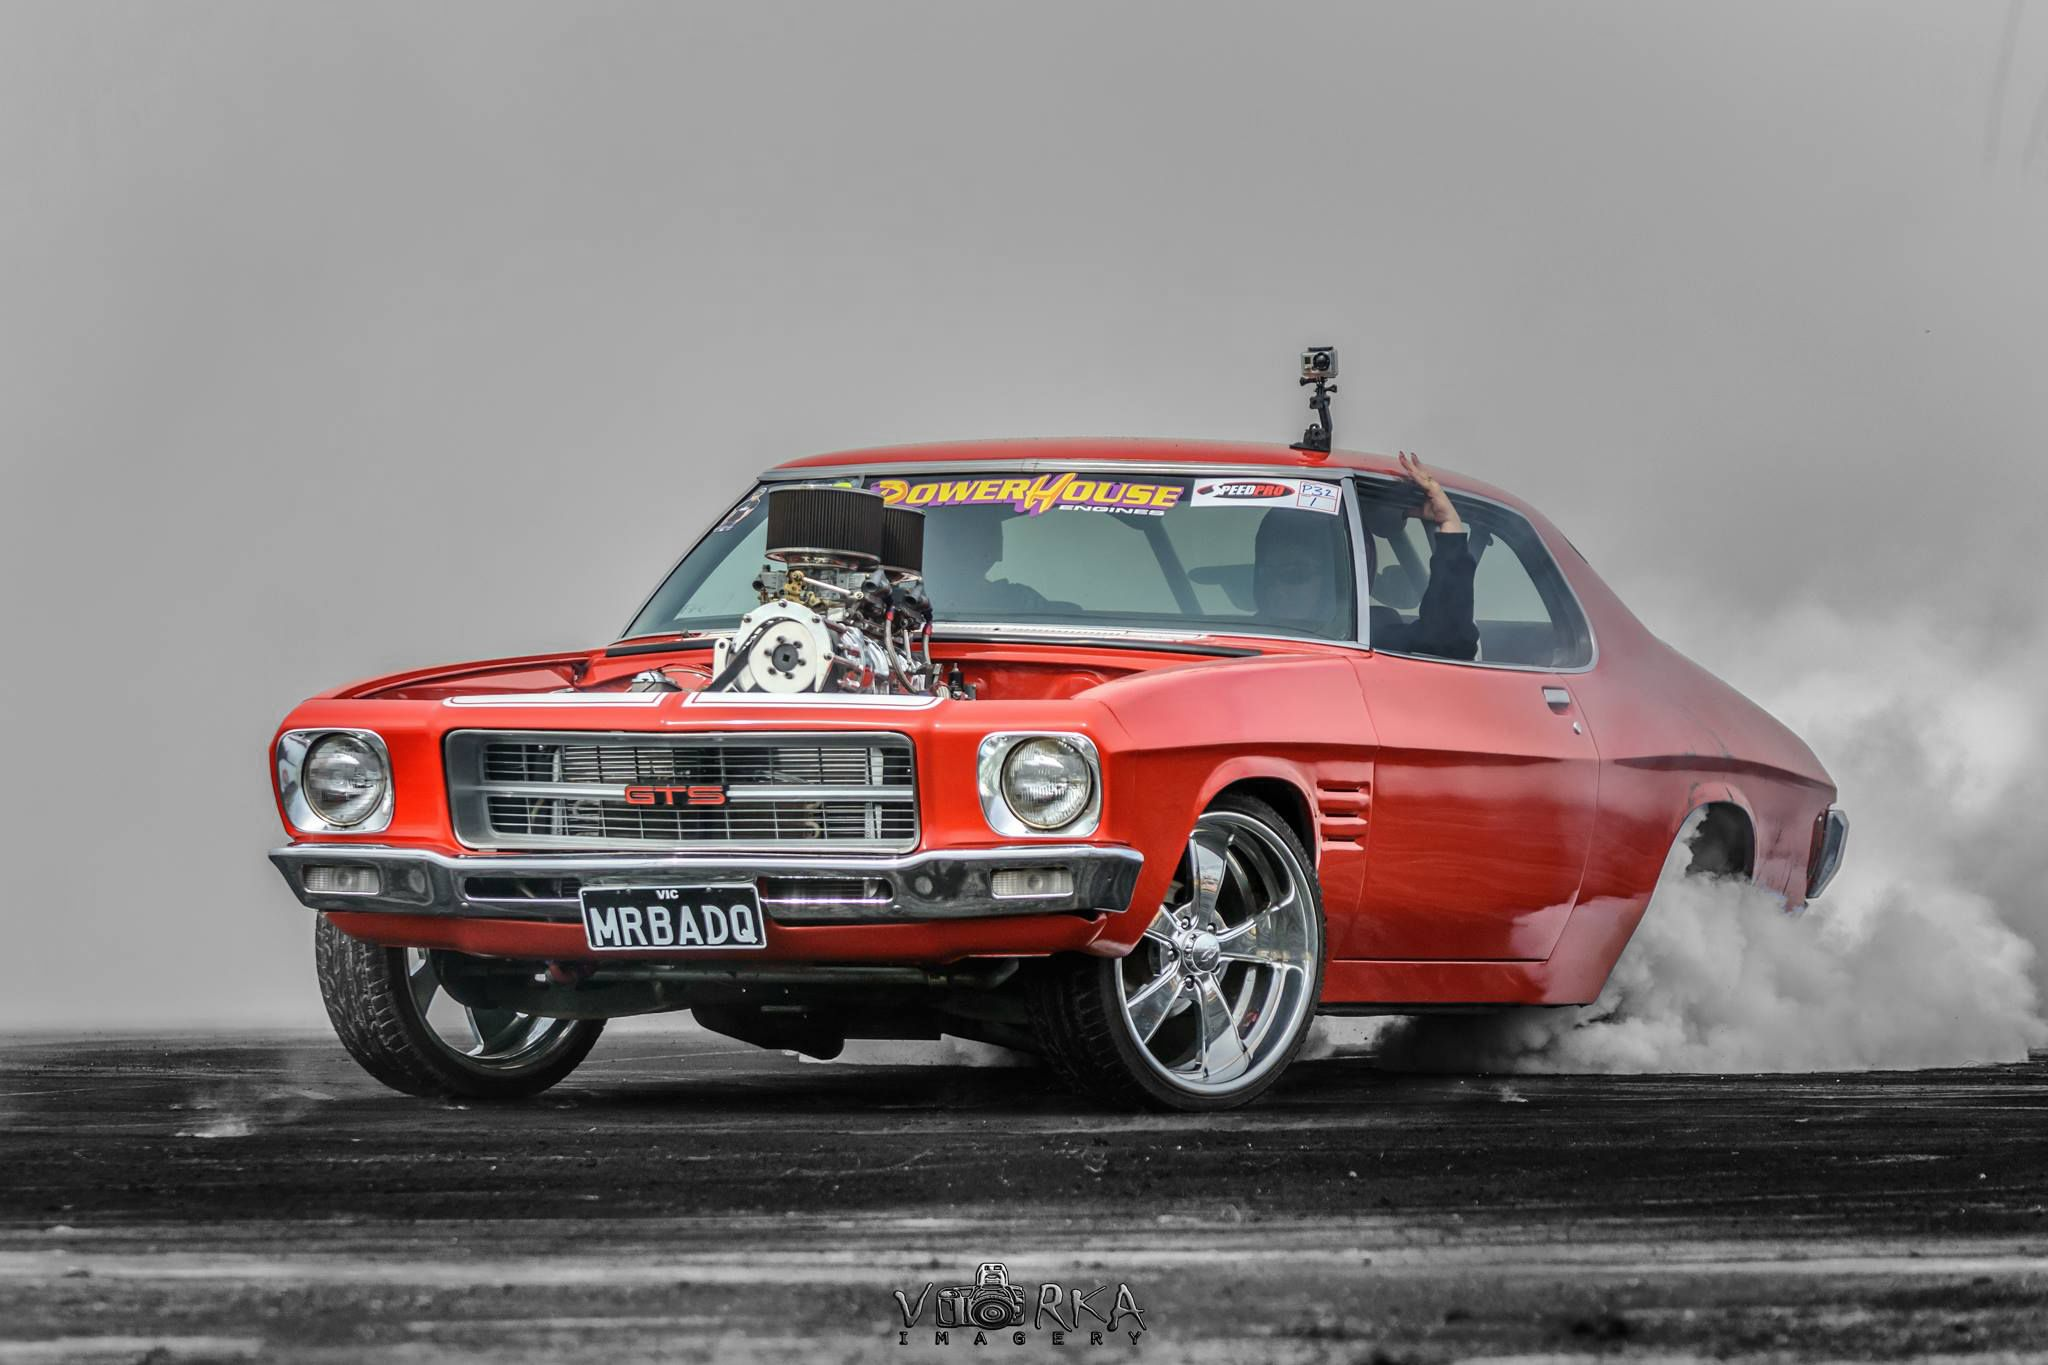 Hq Holden Gts Monaro Mrbadq Burnout Holden Pinterest Cars